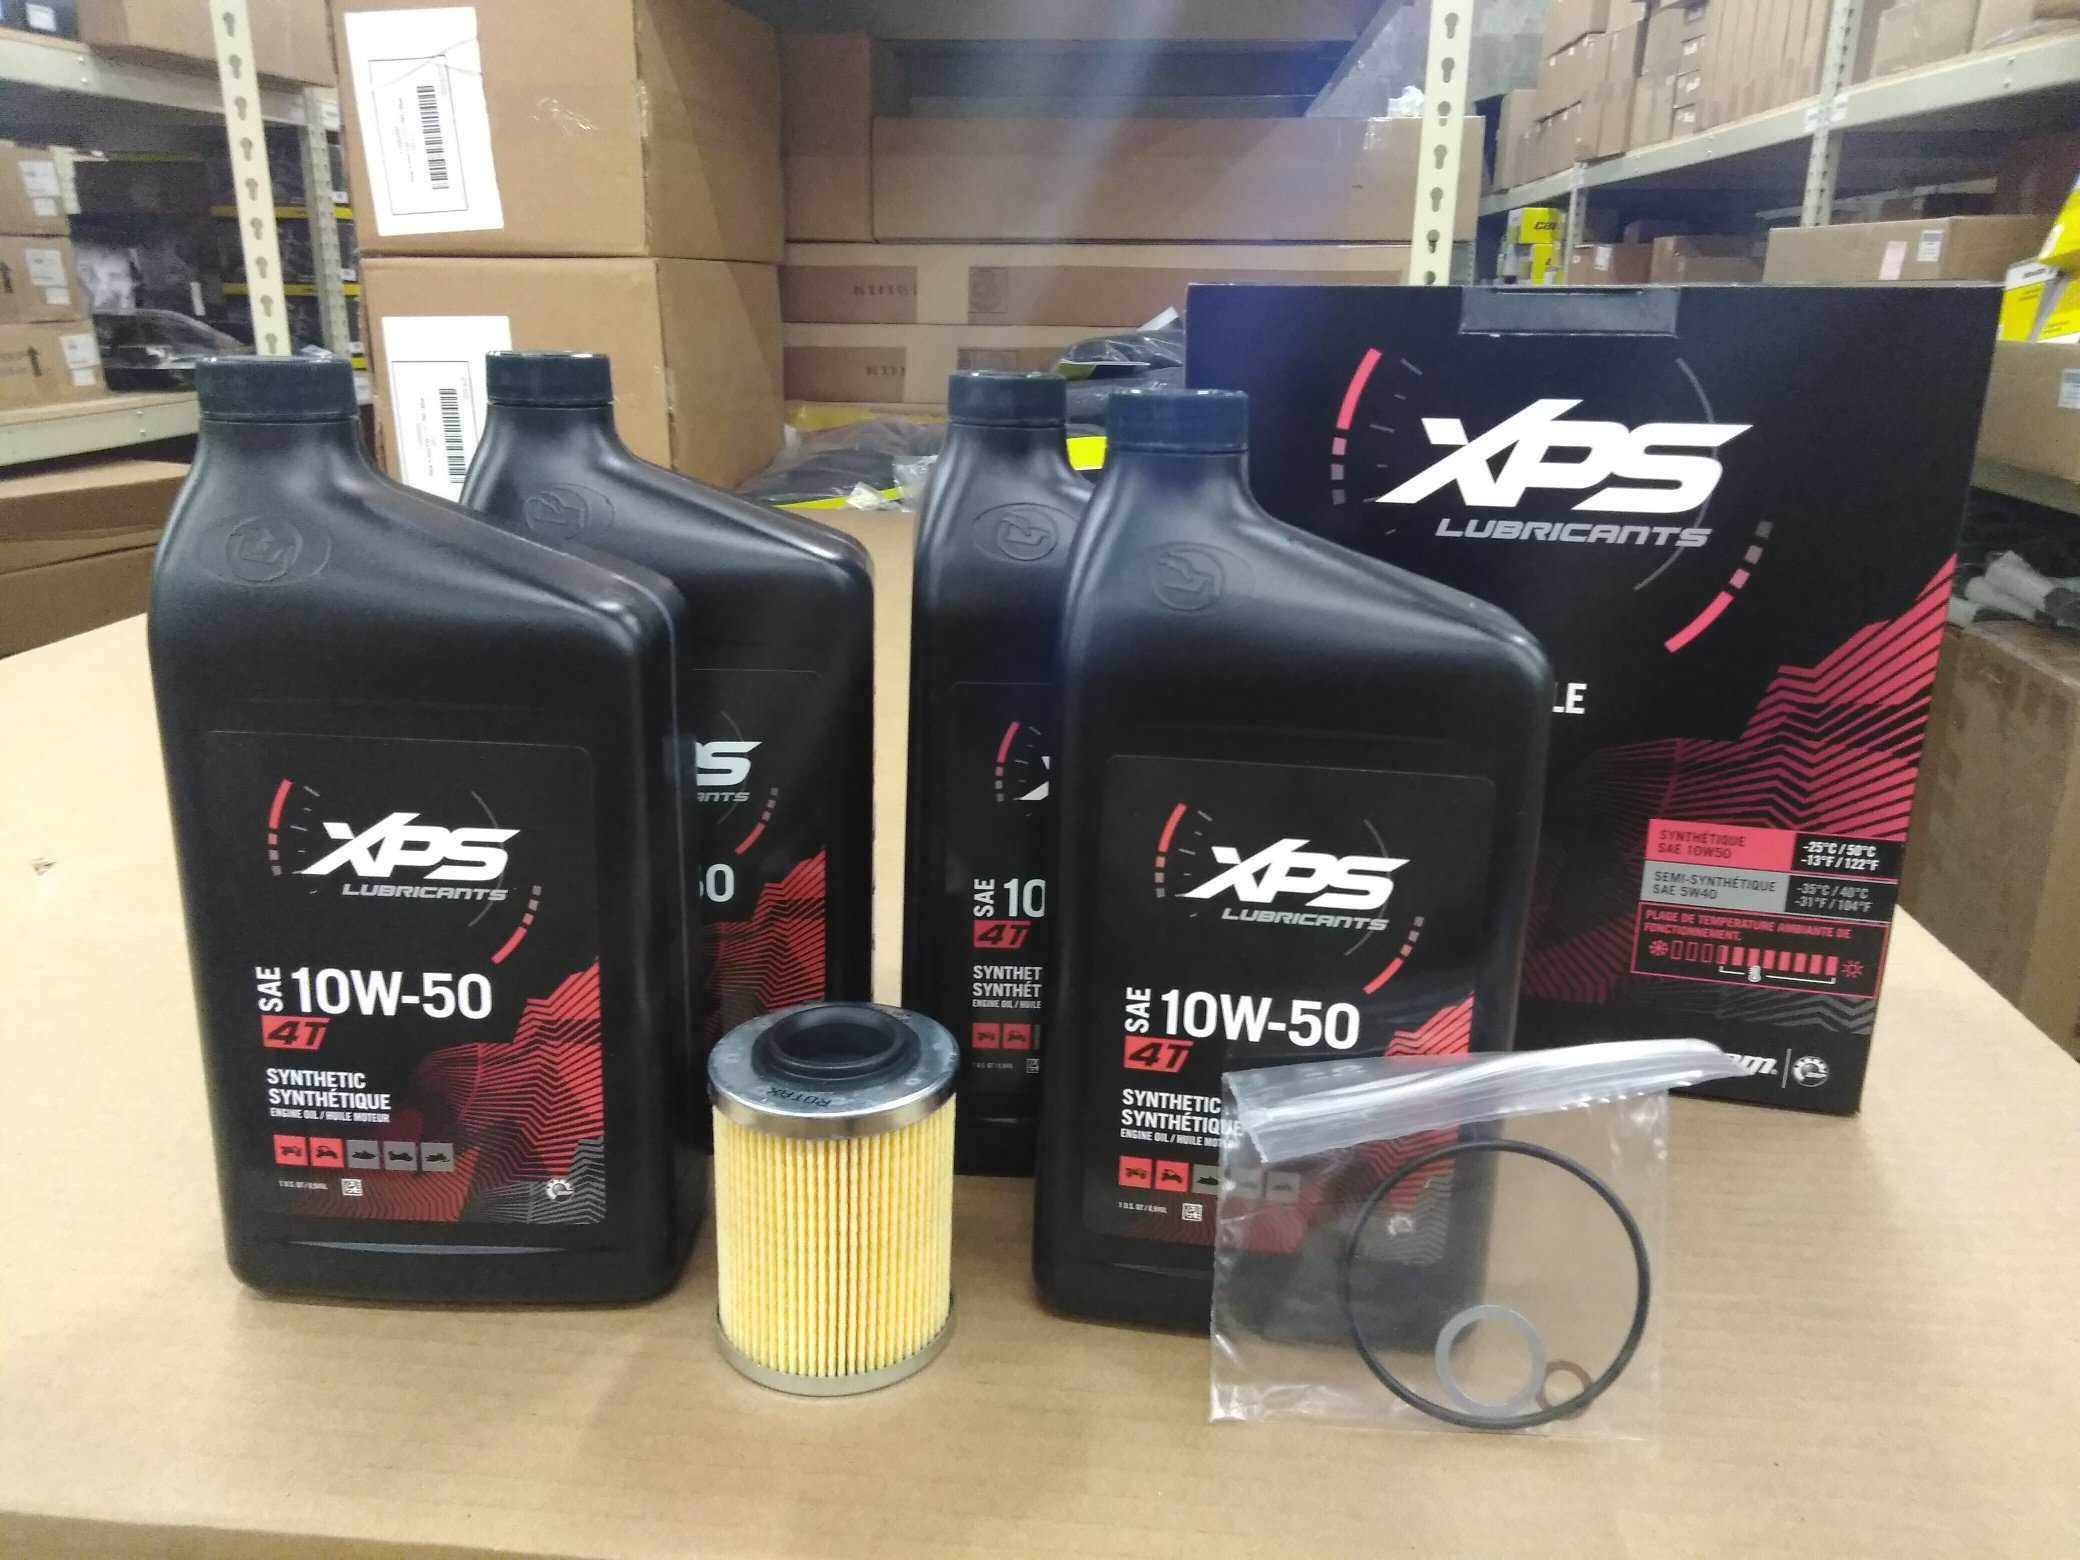 Can Am Maverick X3 Oil Change Kit 10W-50 by Can-Am